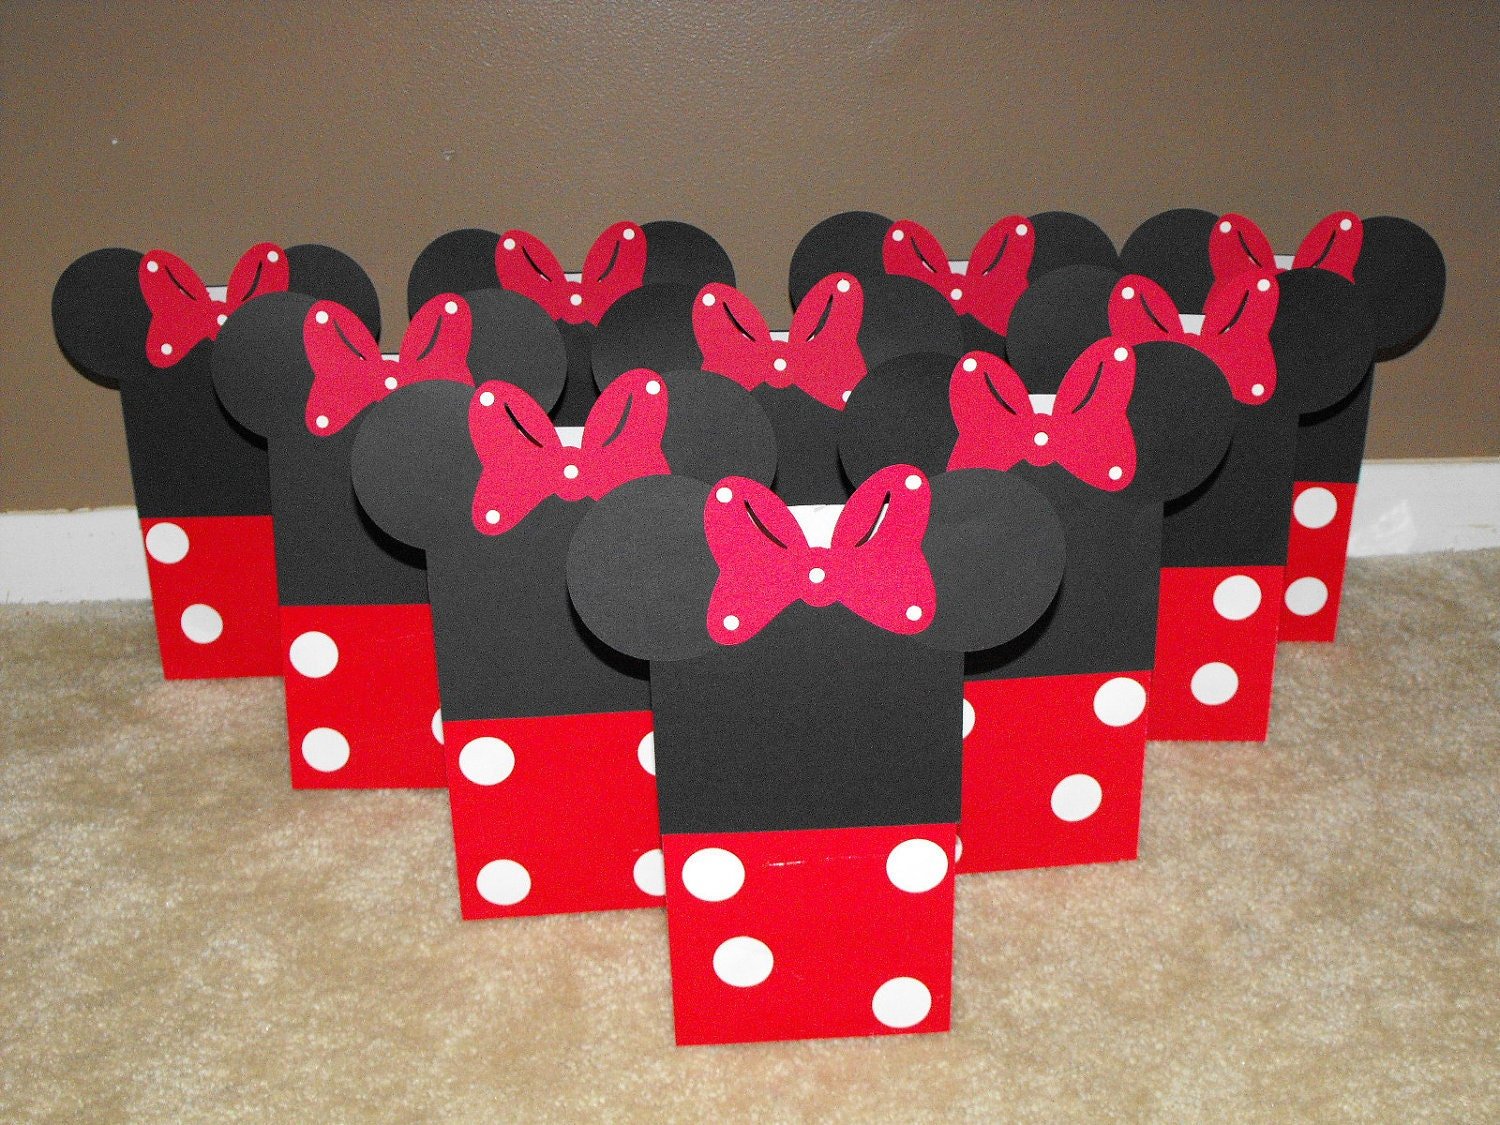 Popular items for minnie mouse party favor on Etsy